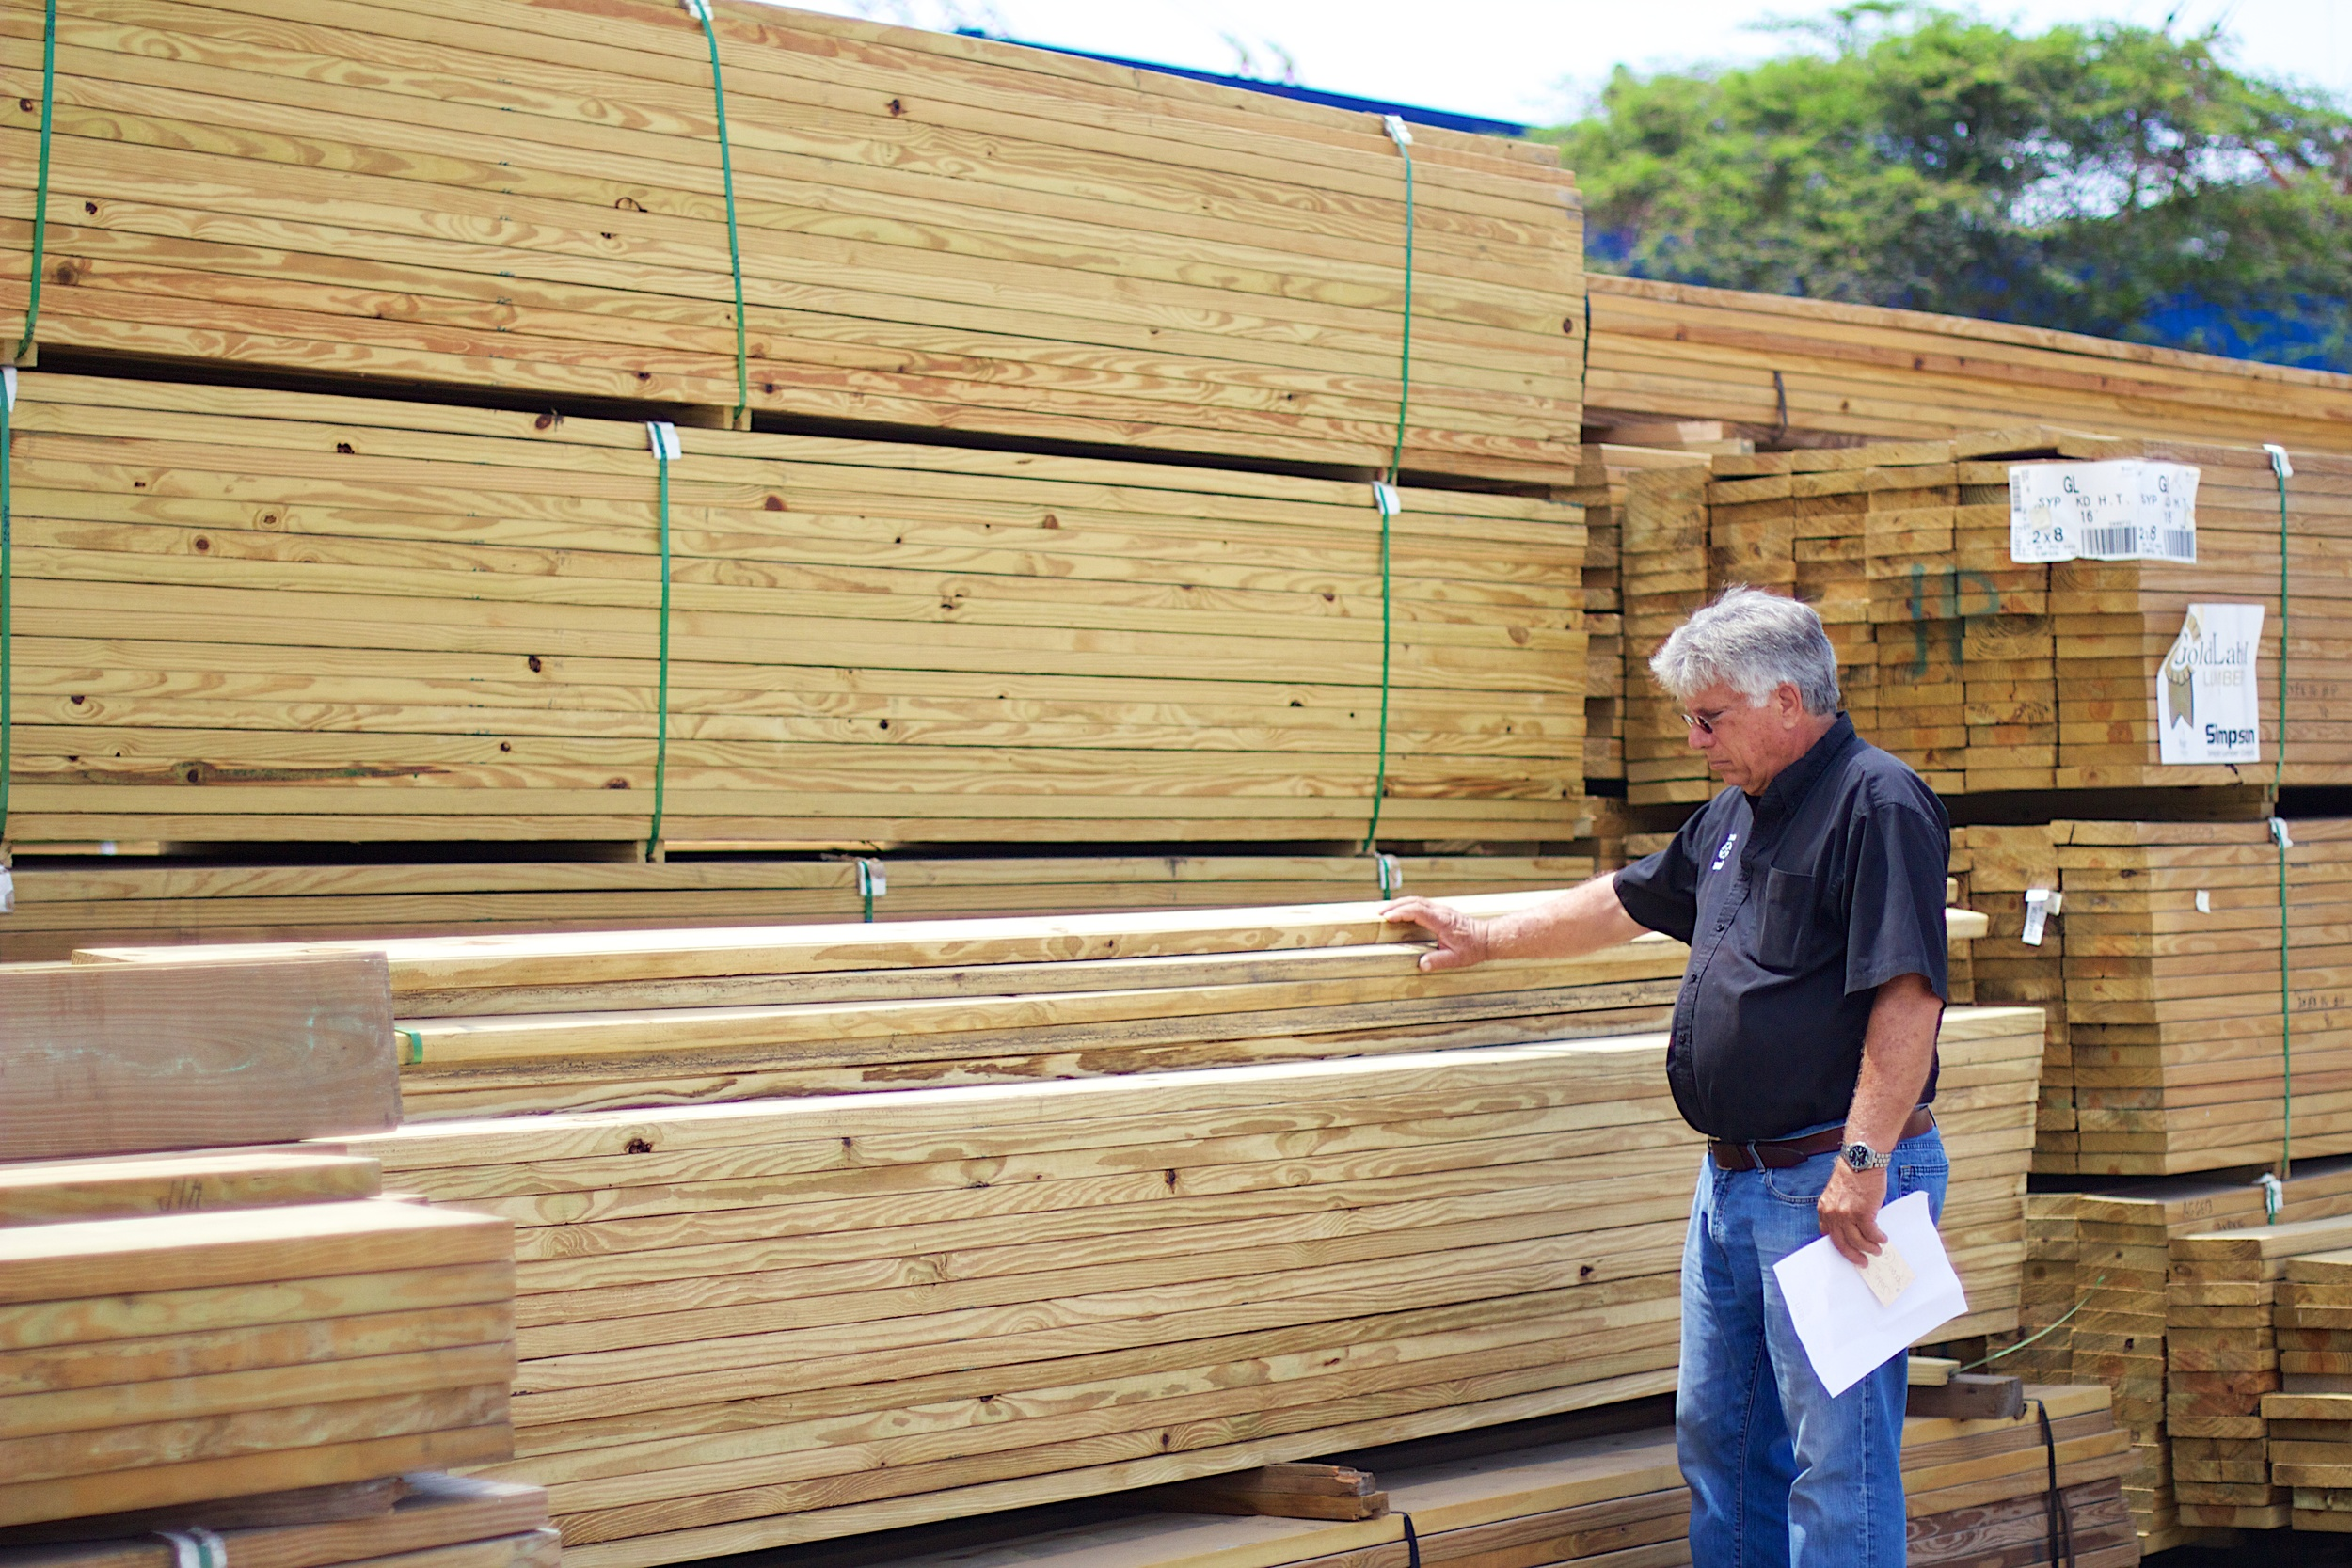 Tom Brunt, CEO, inspects a recent shipment of lumber.